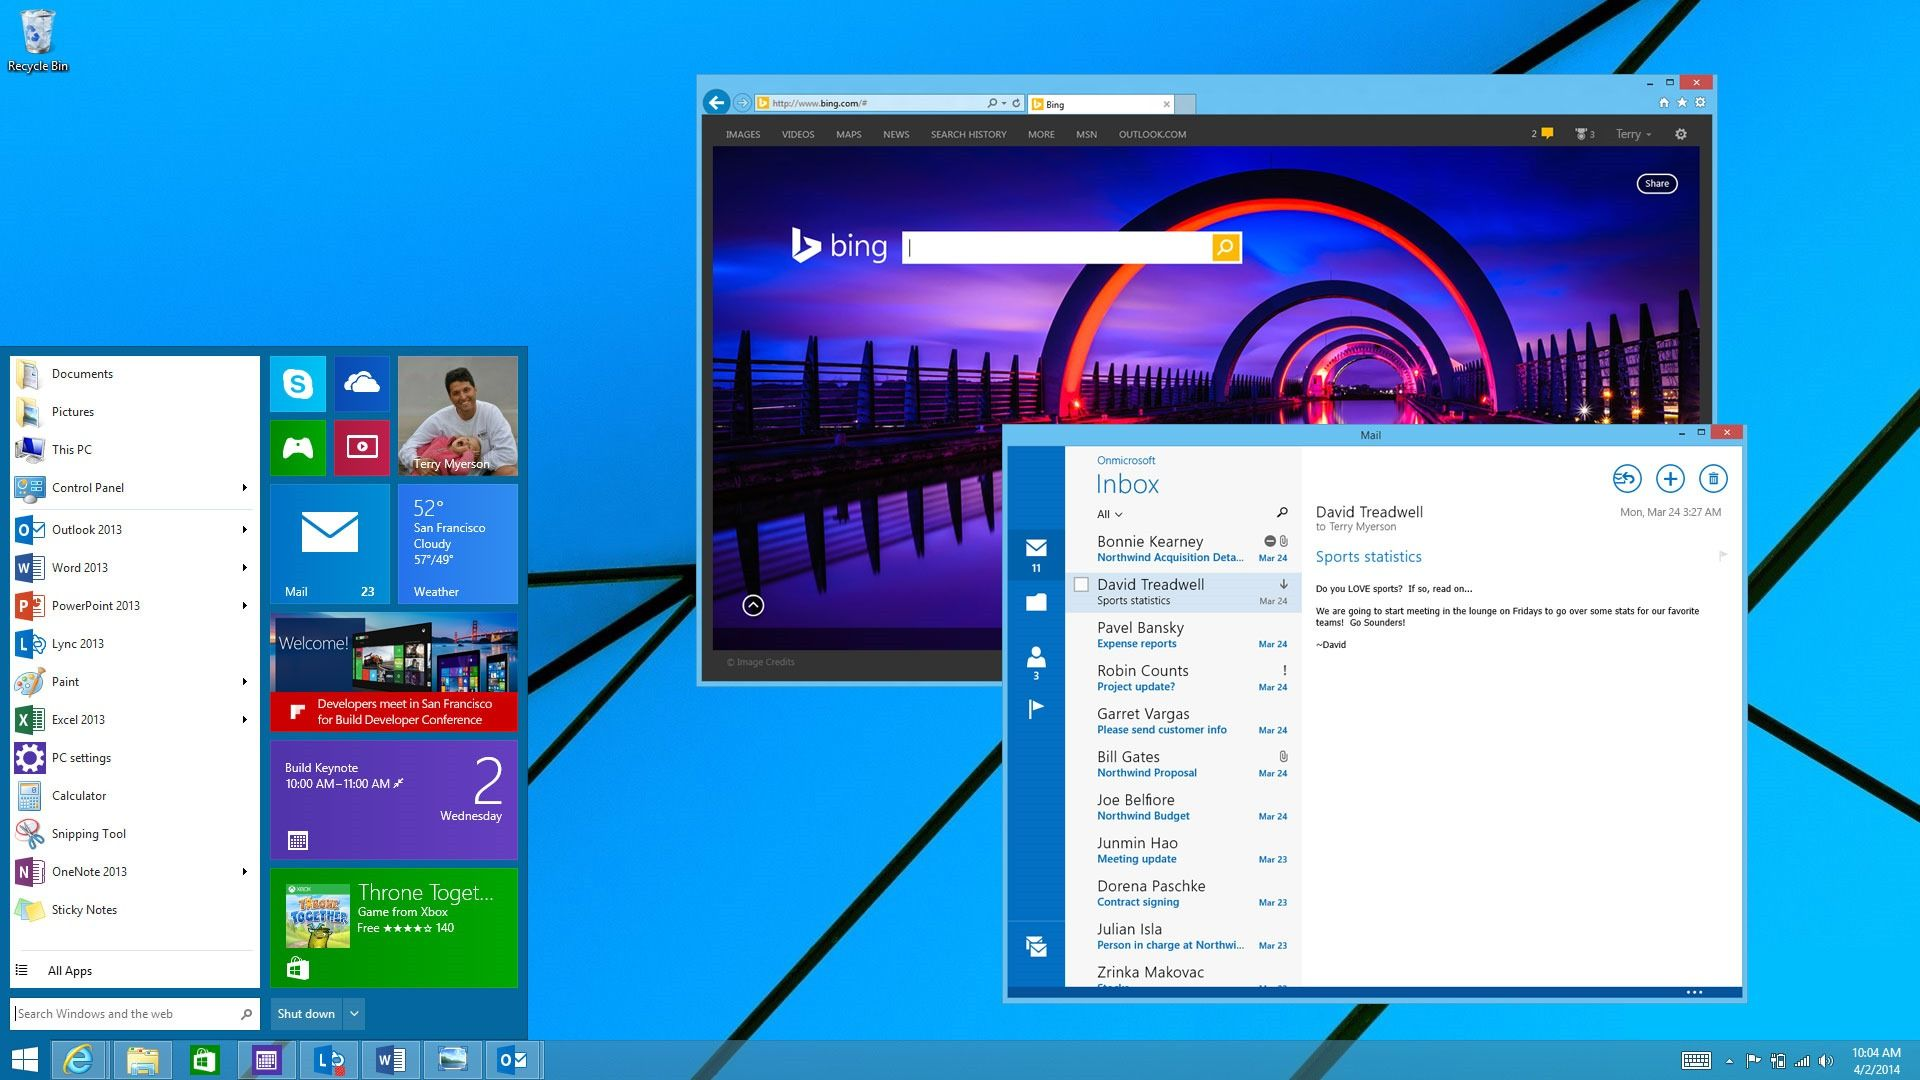 Windows 8.1's returning start menu looks super sleek and well-designed.